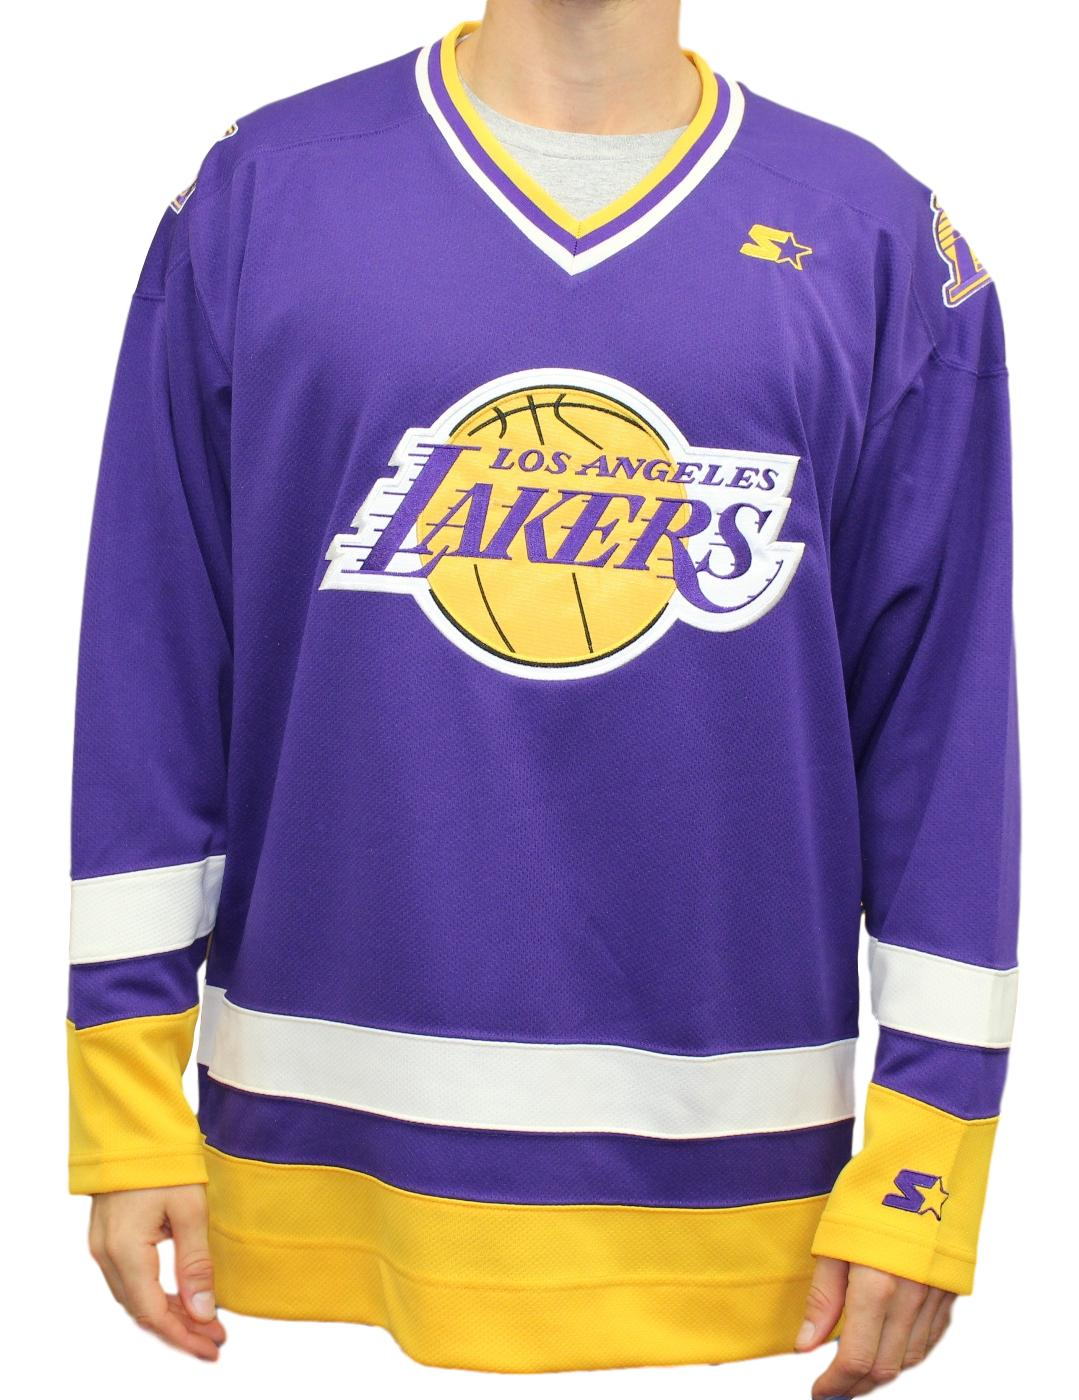 7768171a11a Details about Los Angeles Lakers Starter NBA Men s